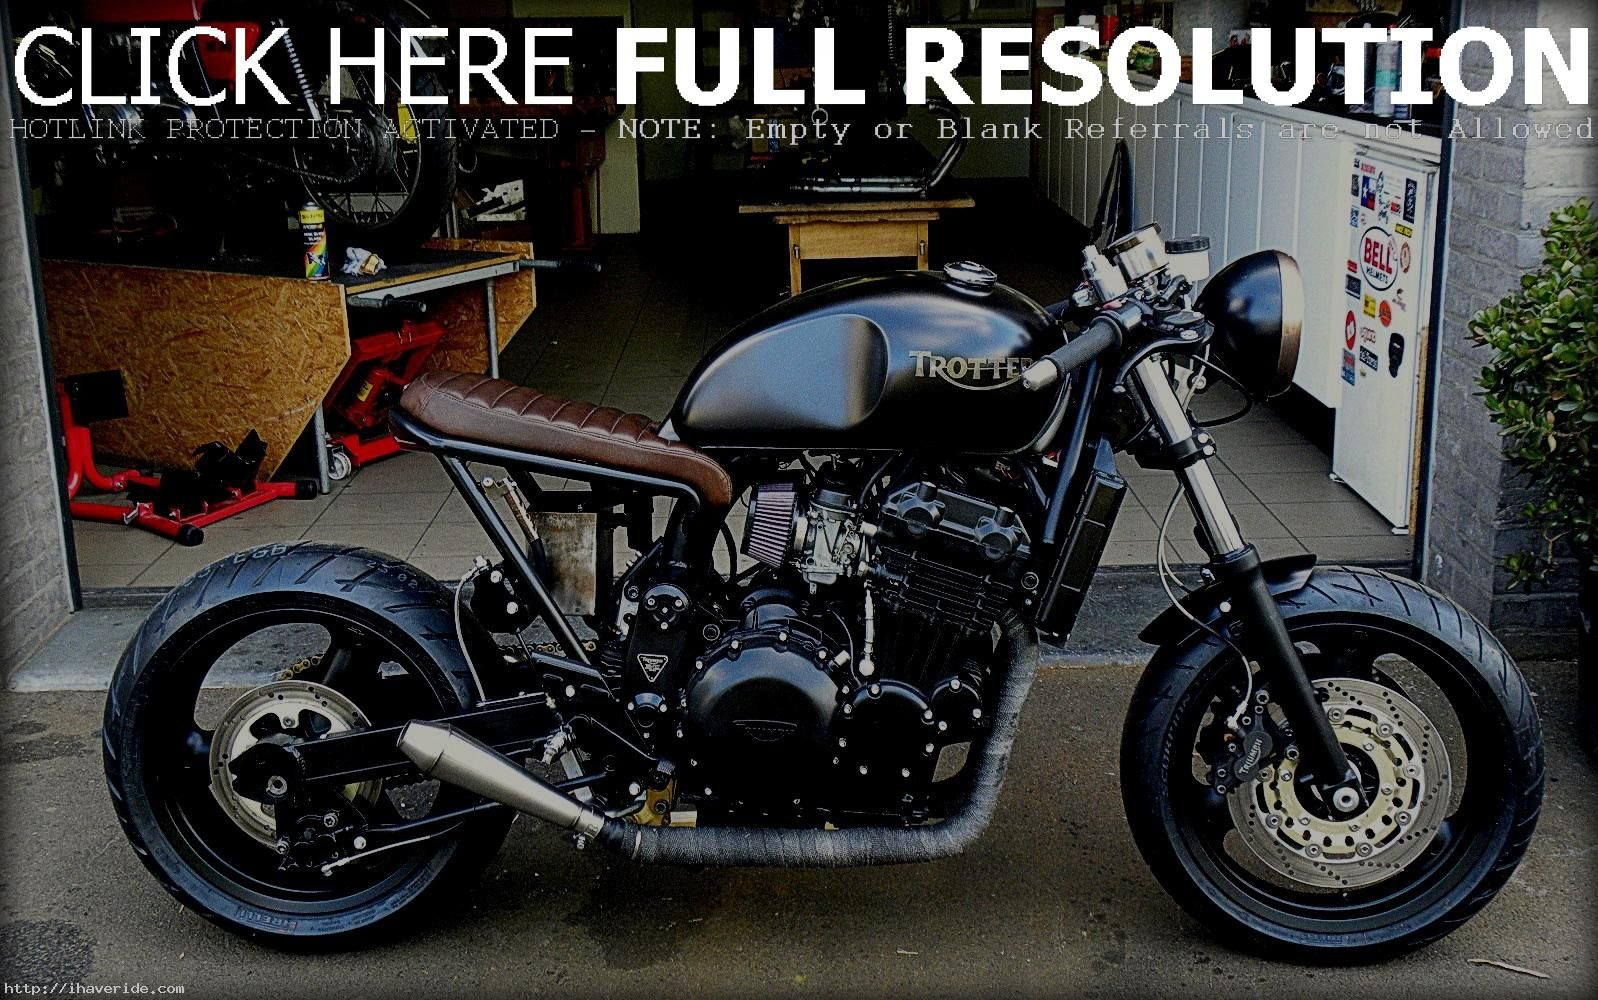 Triumph Cafe Racer For Sale Uk We Have Many Caferacer Wallpaper Photos Like